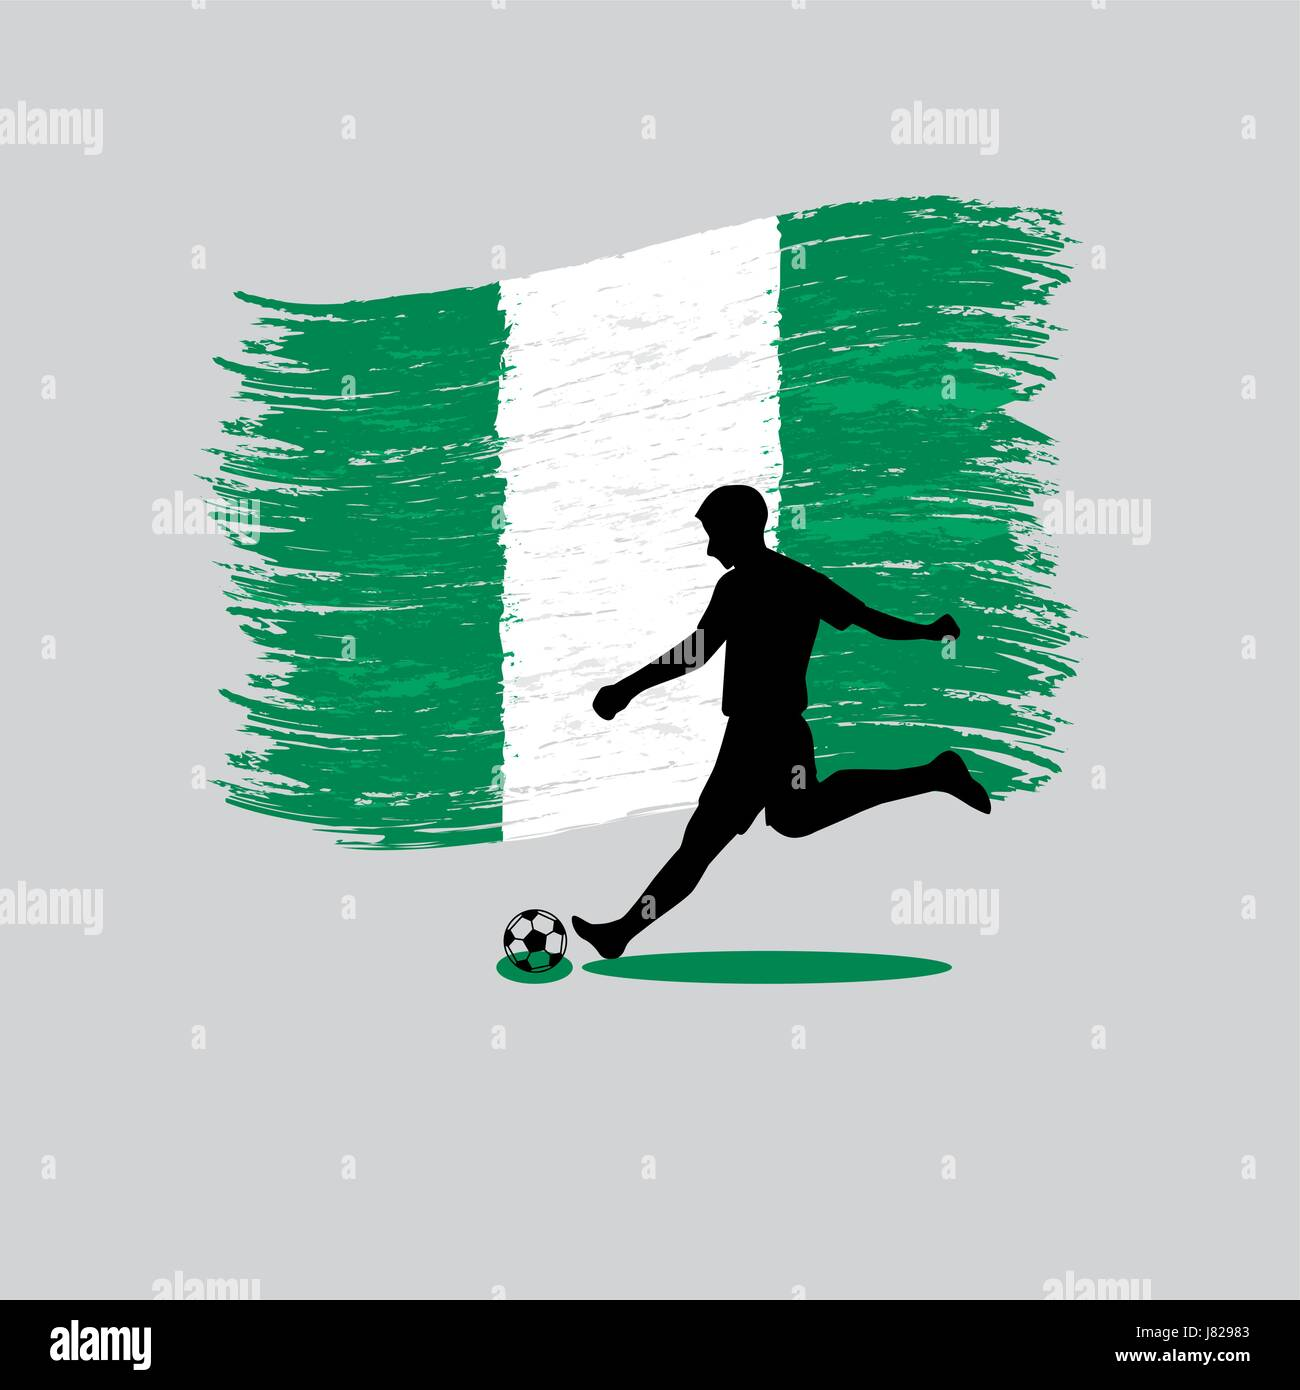 Soccer Player action with Federal Republic of Nigeria on background - Stock Vector